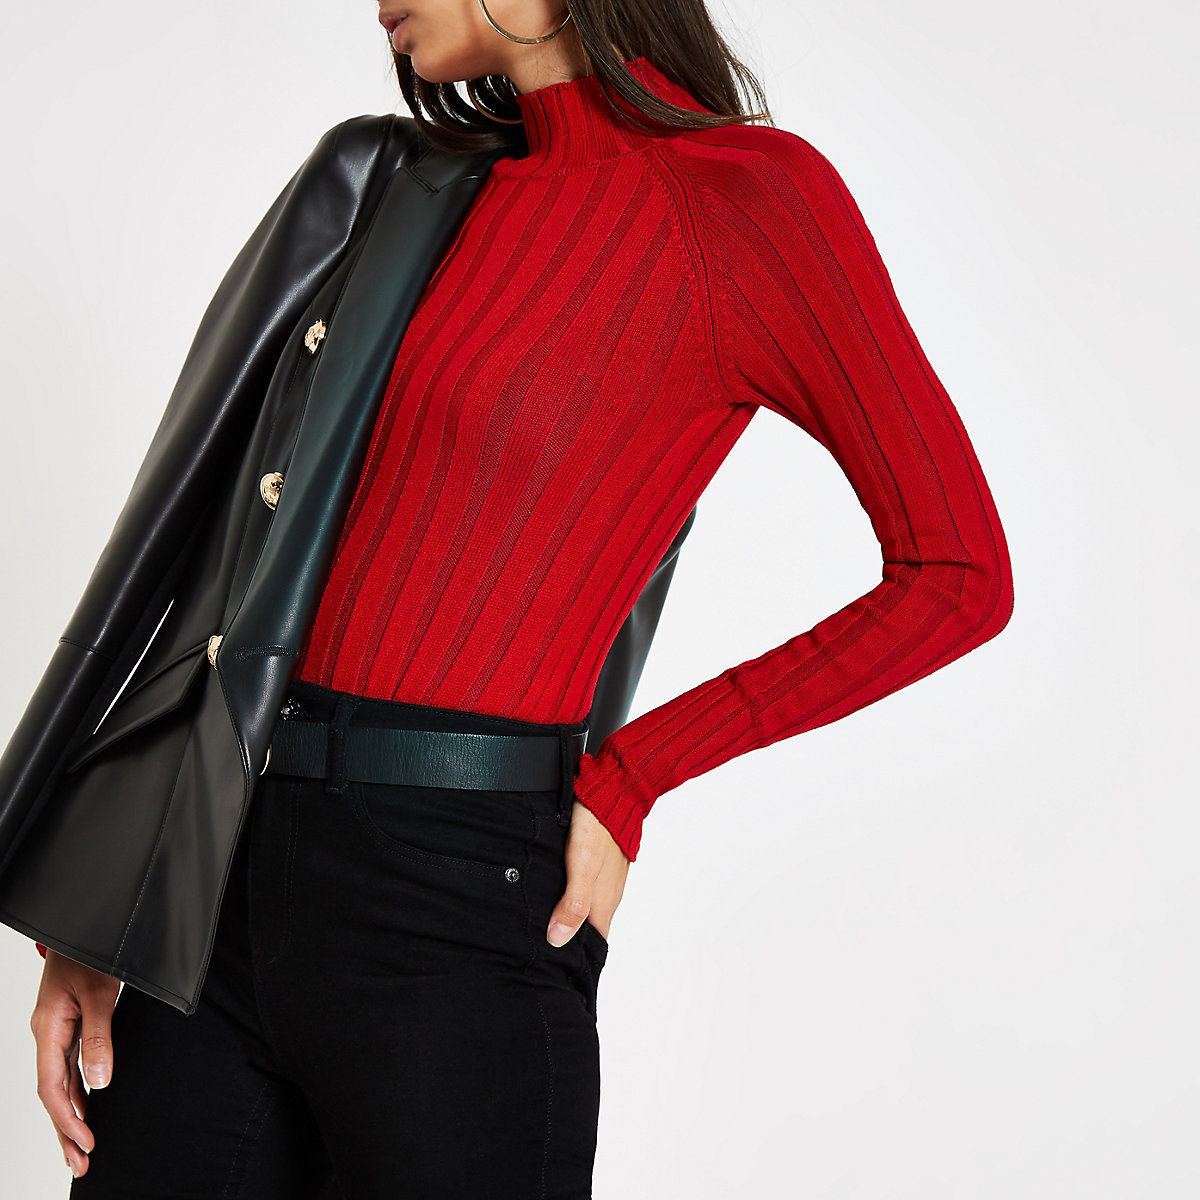 Dark red knit ribbed high neck top